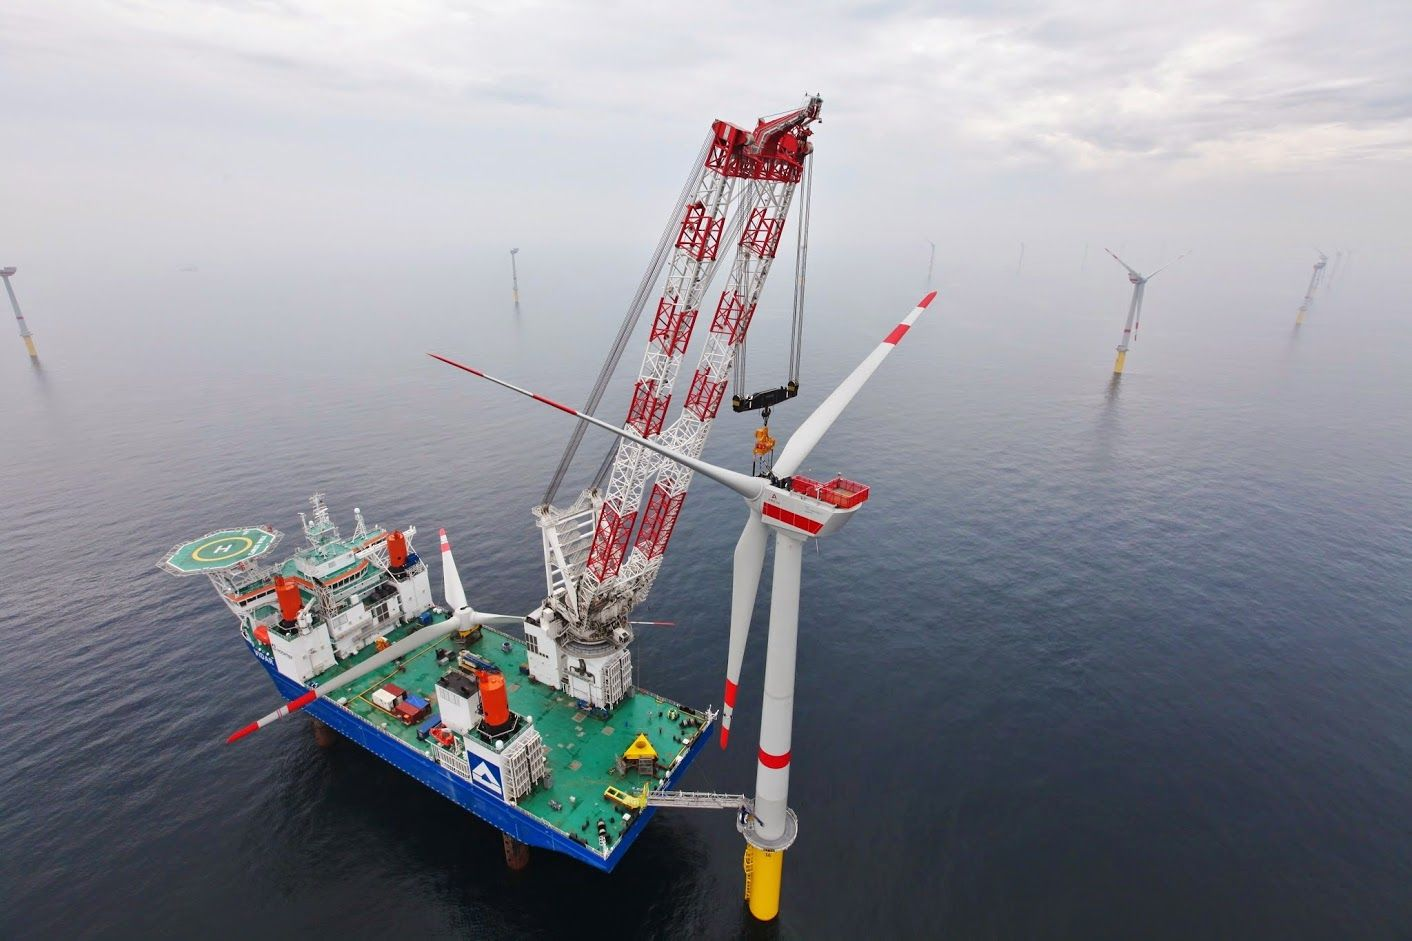 Liebherr - A Heavy lift Offshore Crane, type CAL 45000-1200 Litronic, installing a offshore windpark in the North Sea